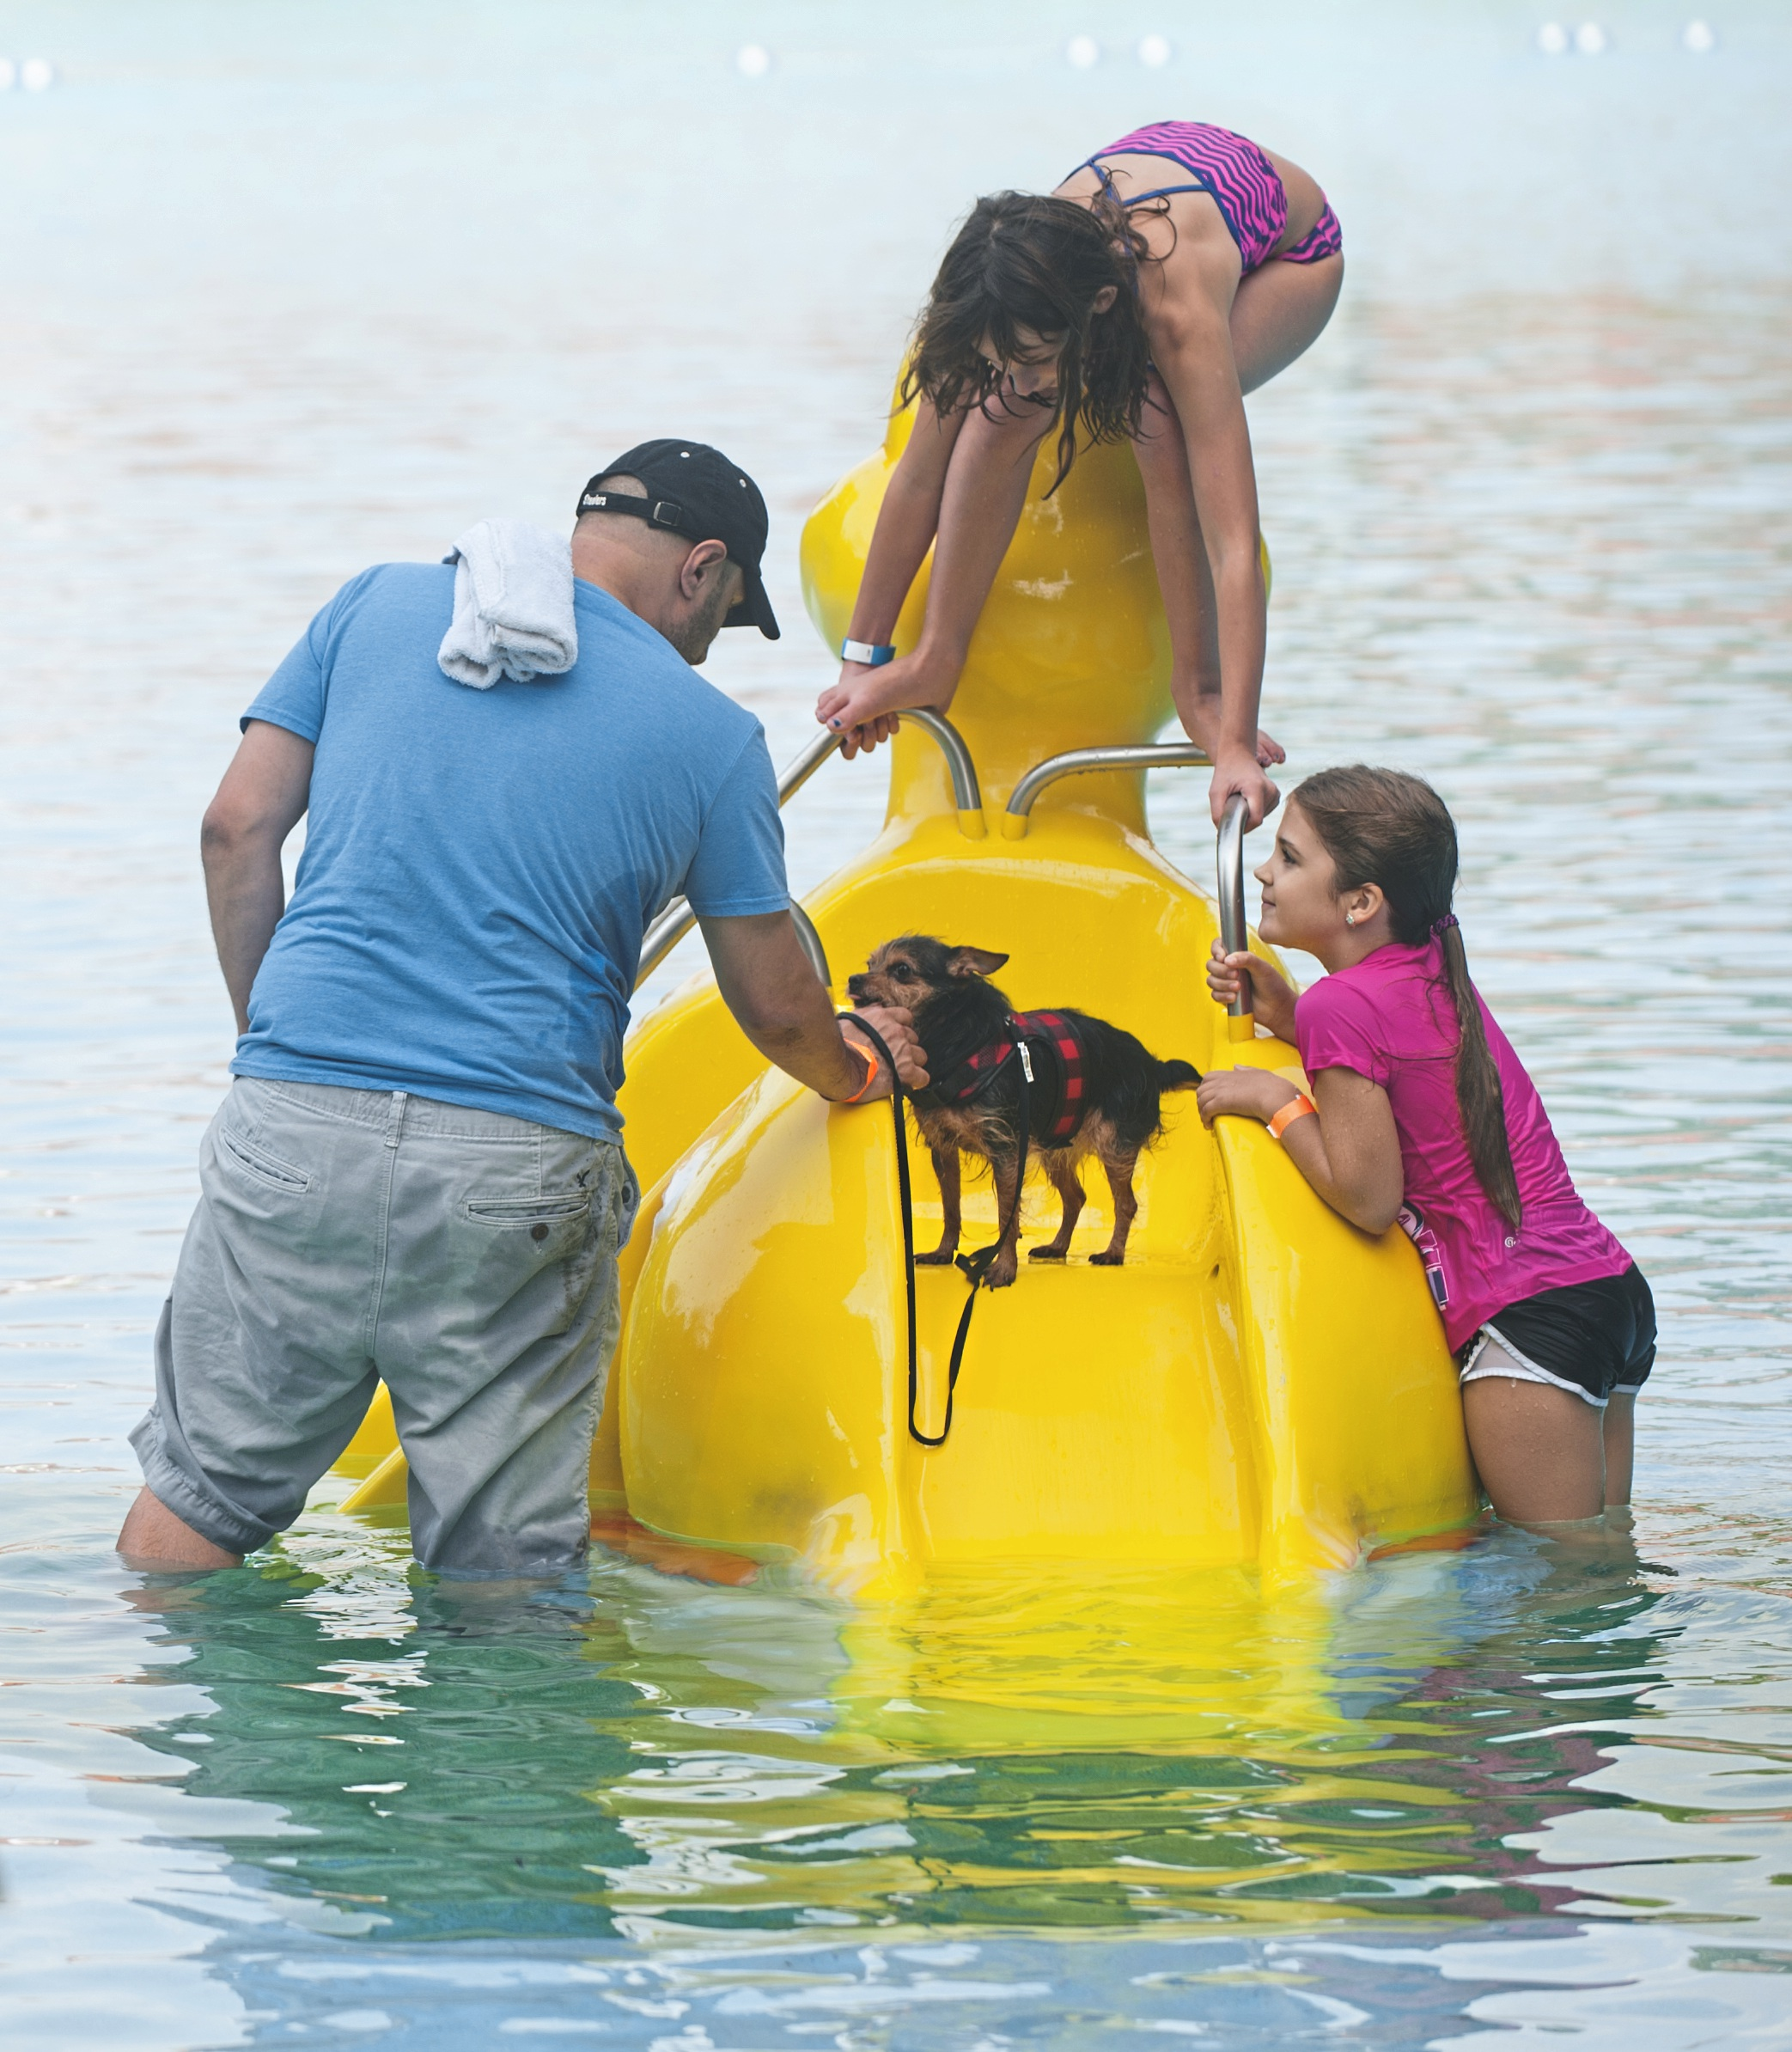 20170904smsWetDogs02-1 Vinny DeBacco, left, of Dormont, tries to coax his half-Chihuahua, half-Yorkie down the slide during the Dormont Doggie Dip at Dormont Pool on Monday.